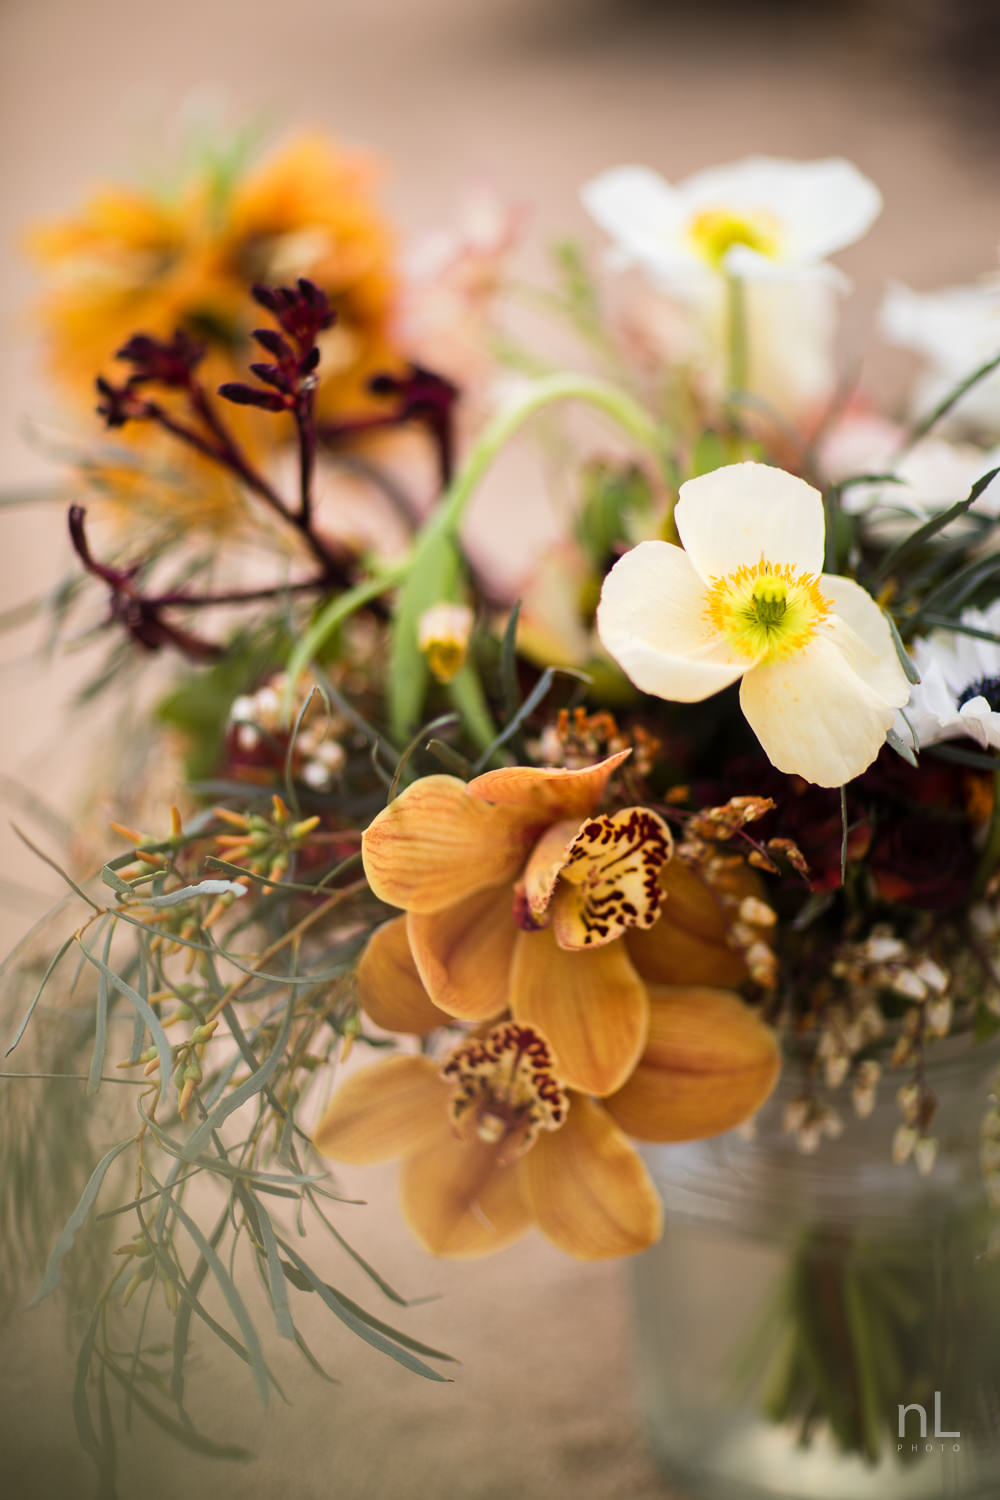 joshua-tree-engagement-wedding-elopement-photography-stylized-photoshoot-beautiful-floral-bouquet-in-vase